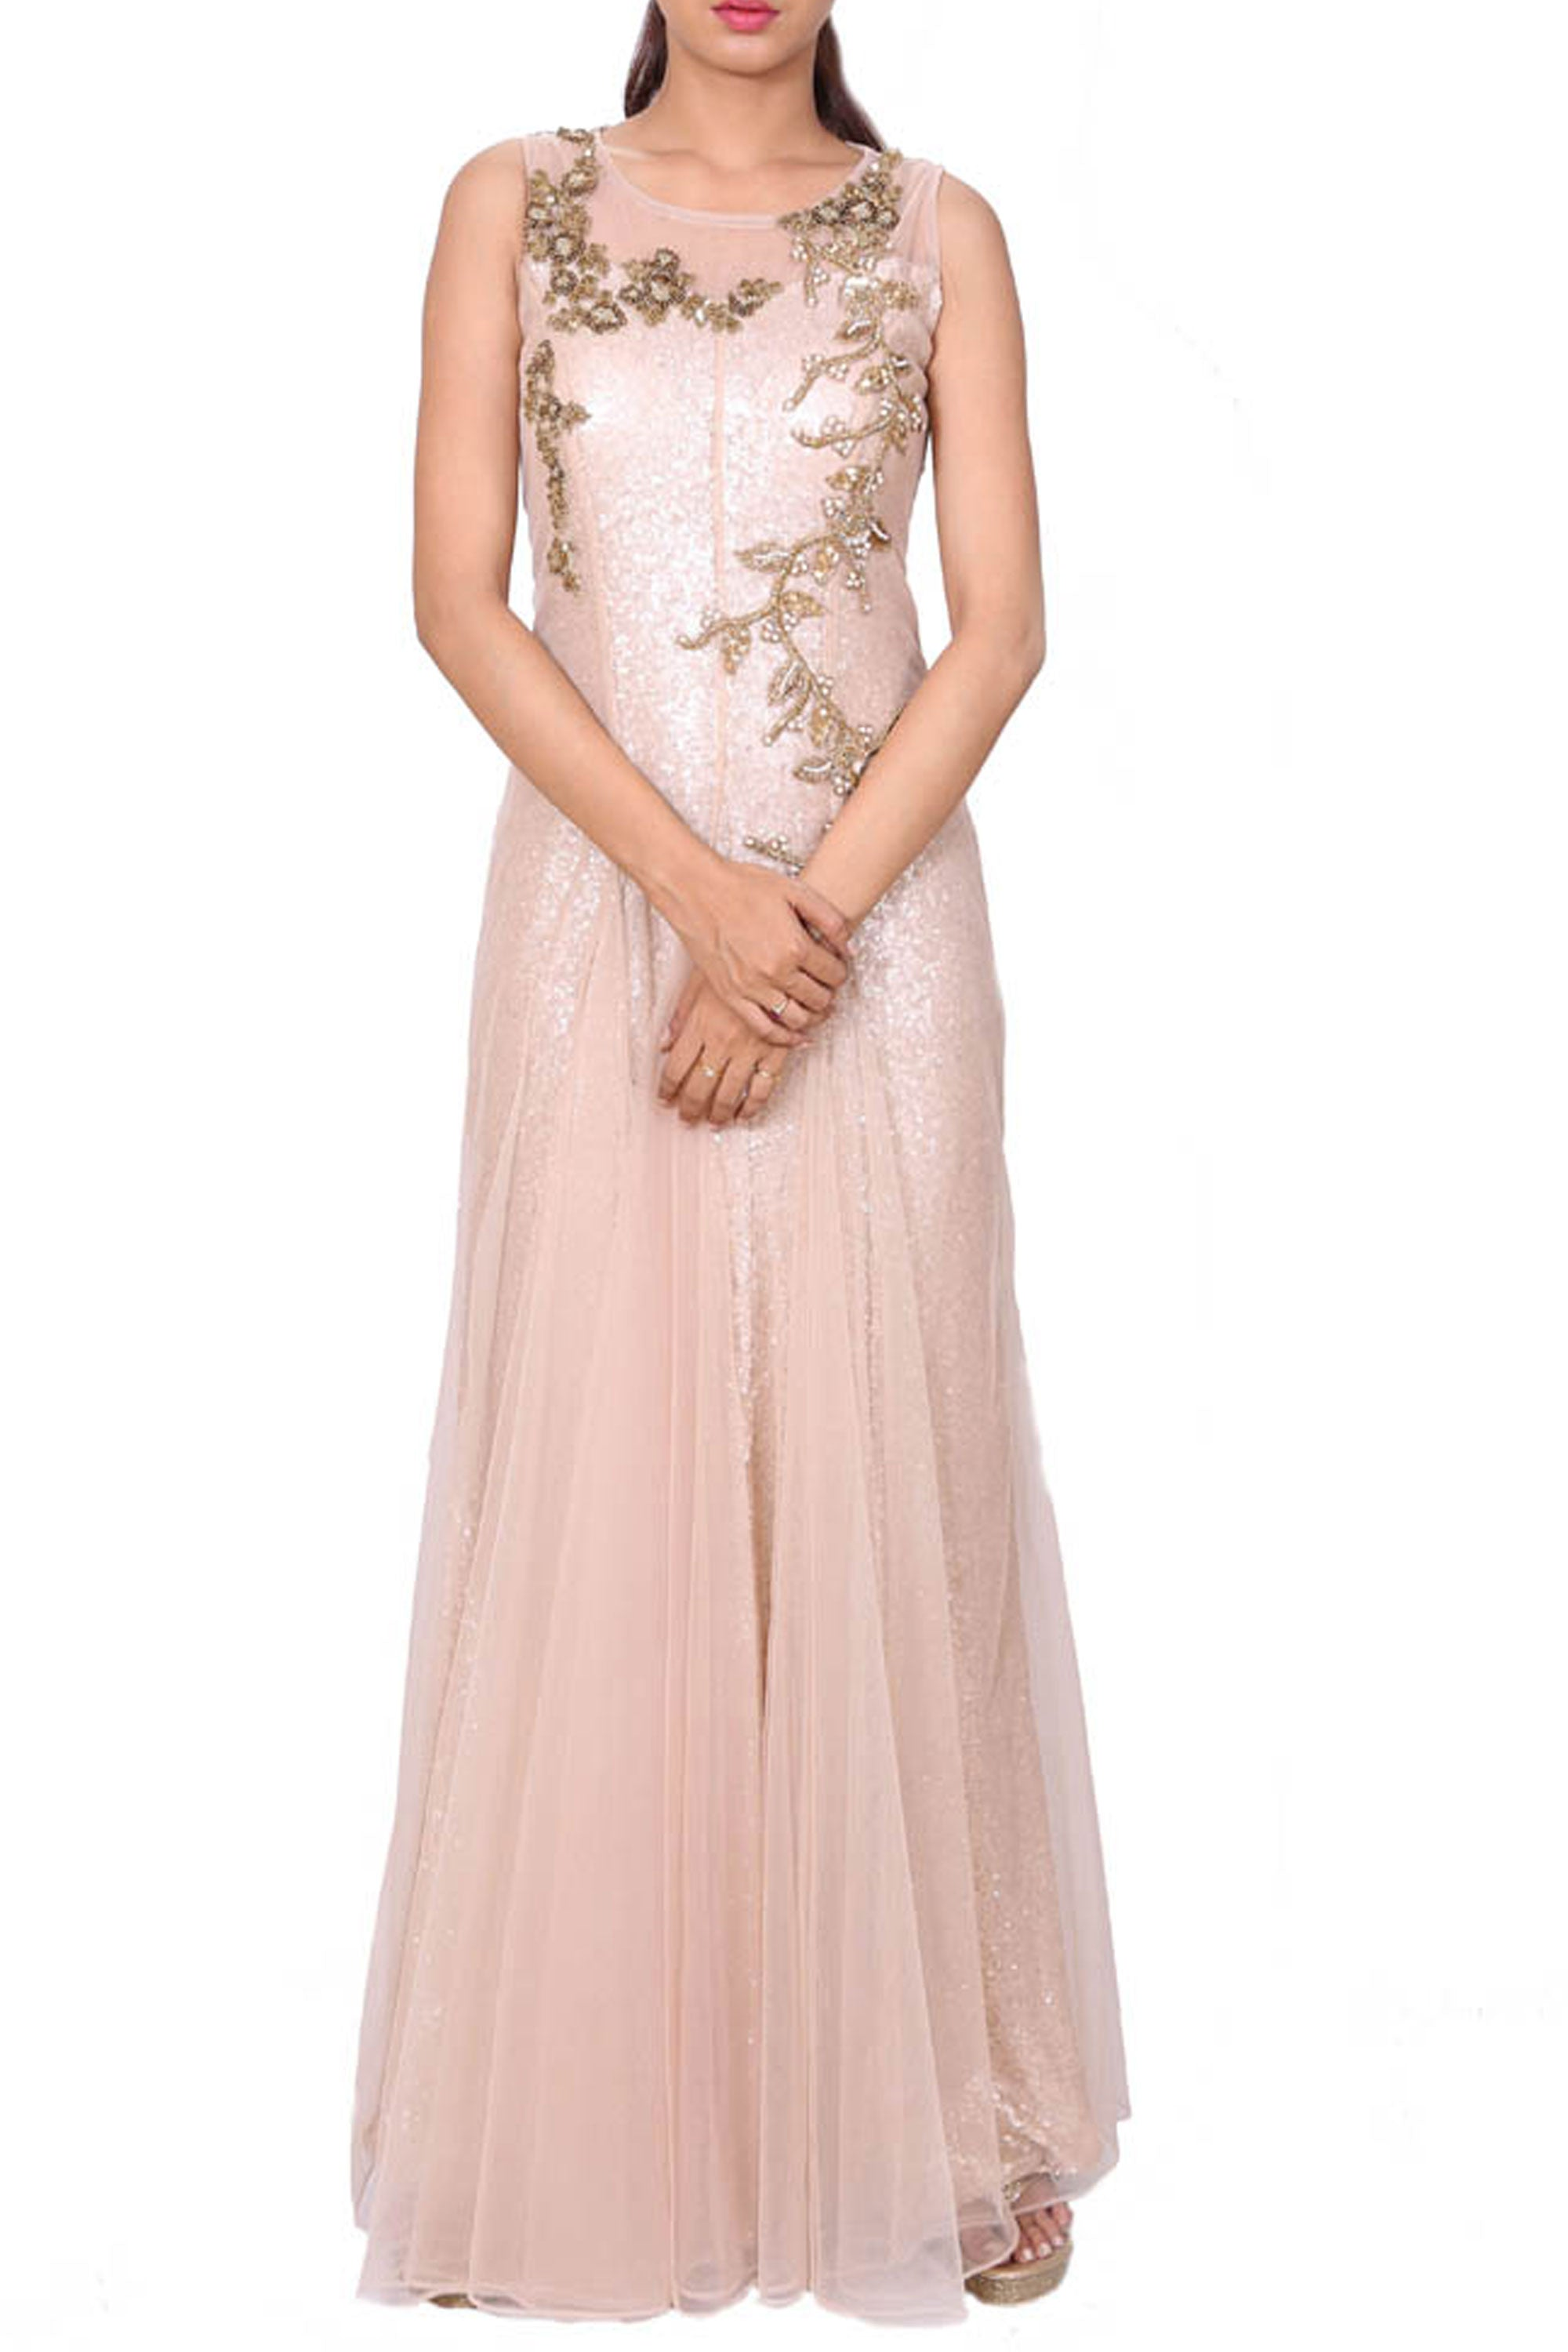 Beige Evening Gown With Gold-Moti Embroidery Front